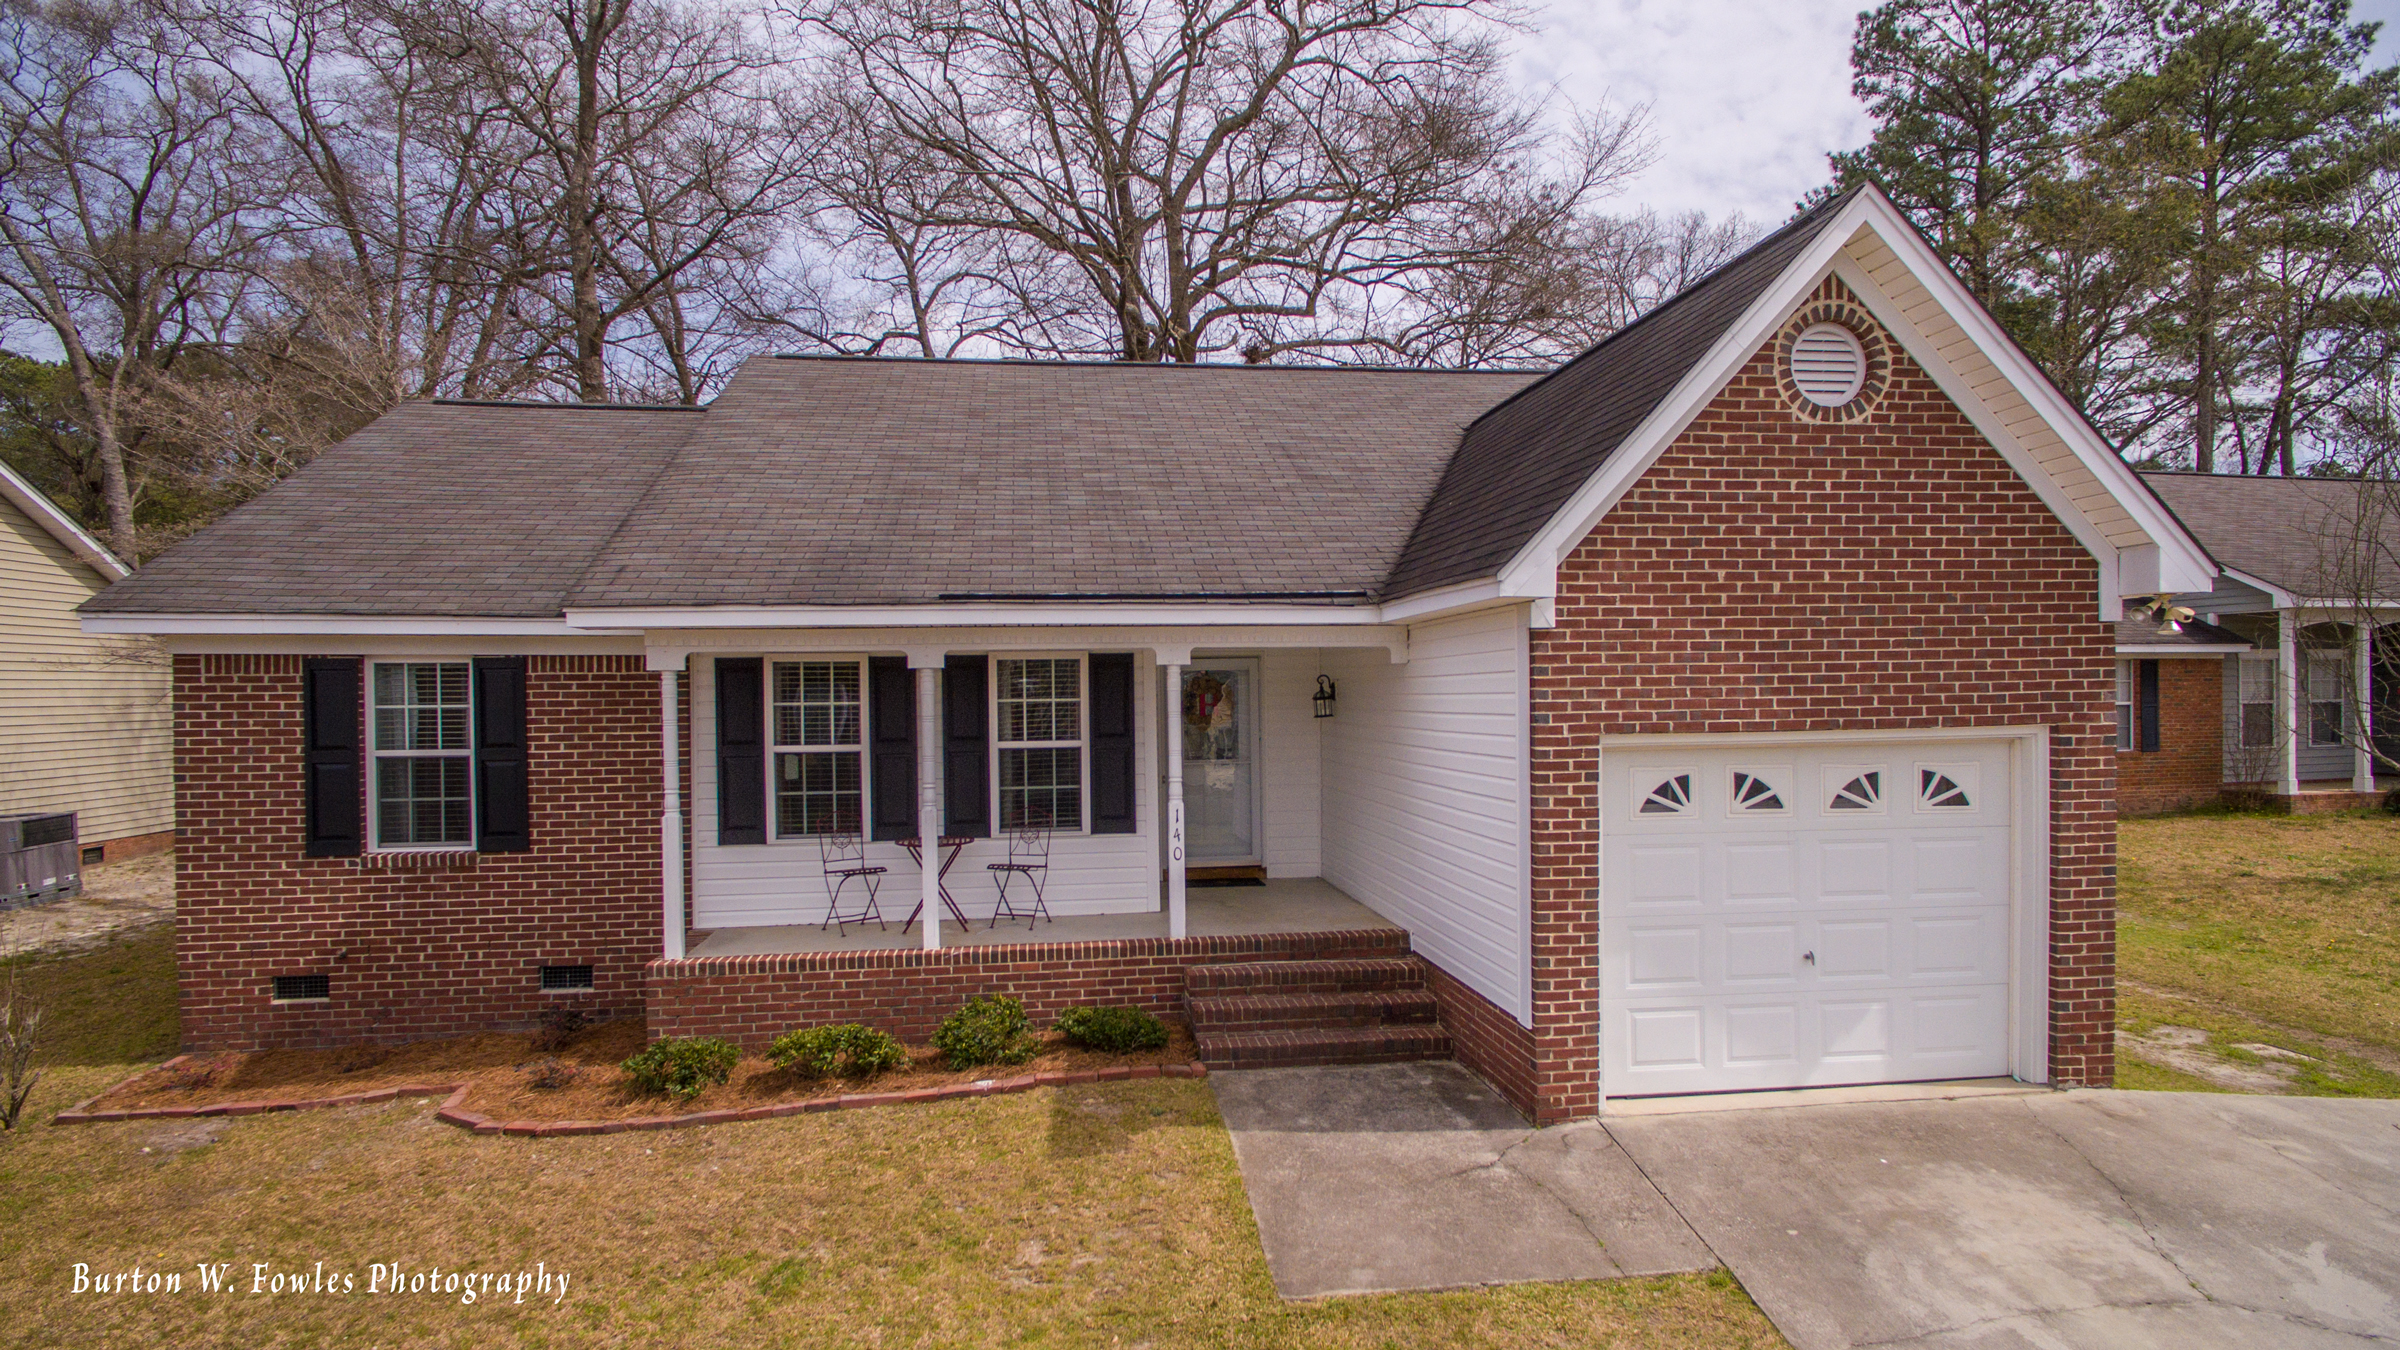 For Sale: 140 Whispering Glen Circle, West Columbia, SC 29170Listed by Burton W. FowlesWellman 3D Realty